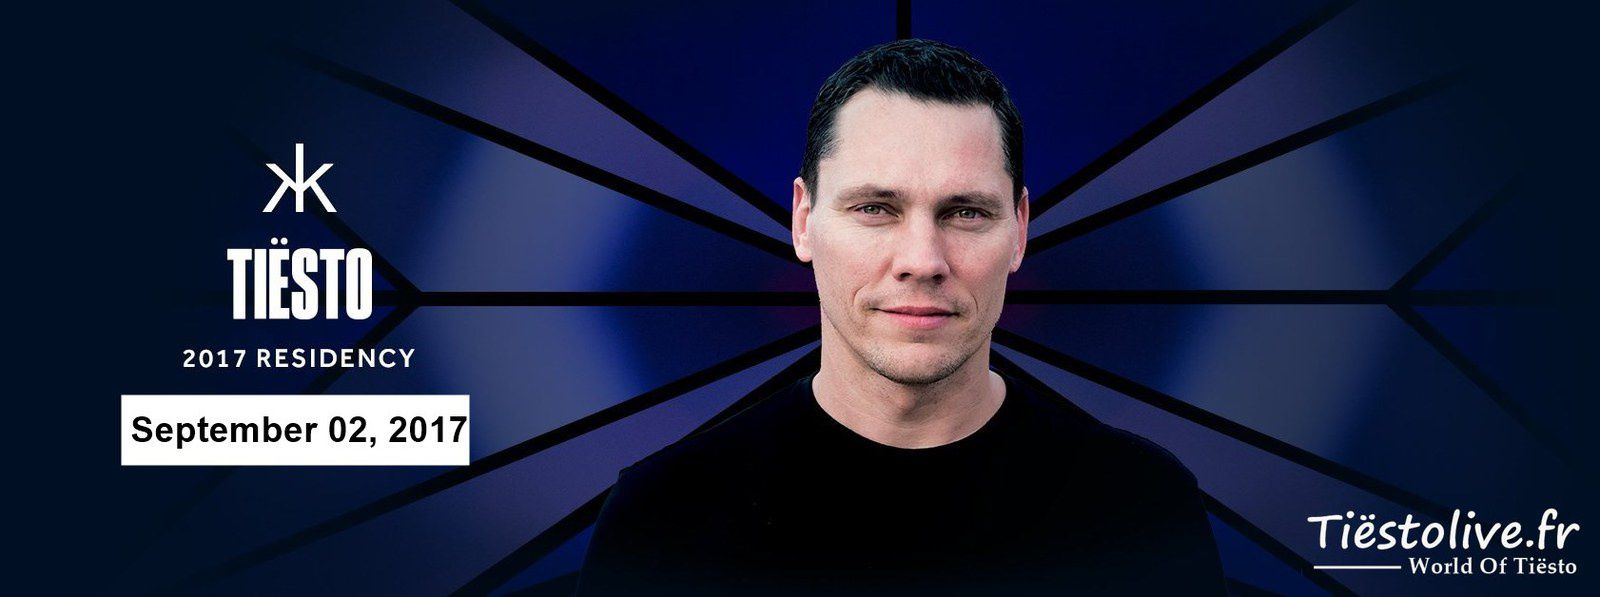 Tiësto photos, vidéo | Hakkasan | Las Vegas, NV - september 02, 2017